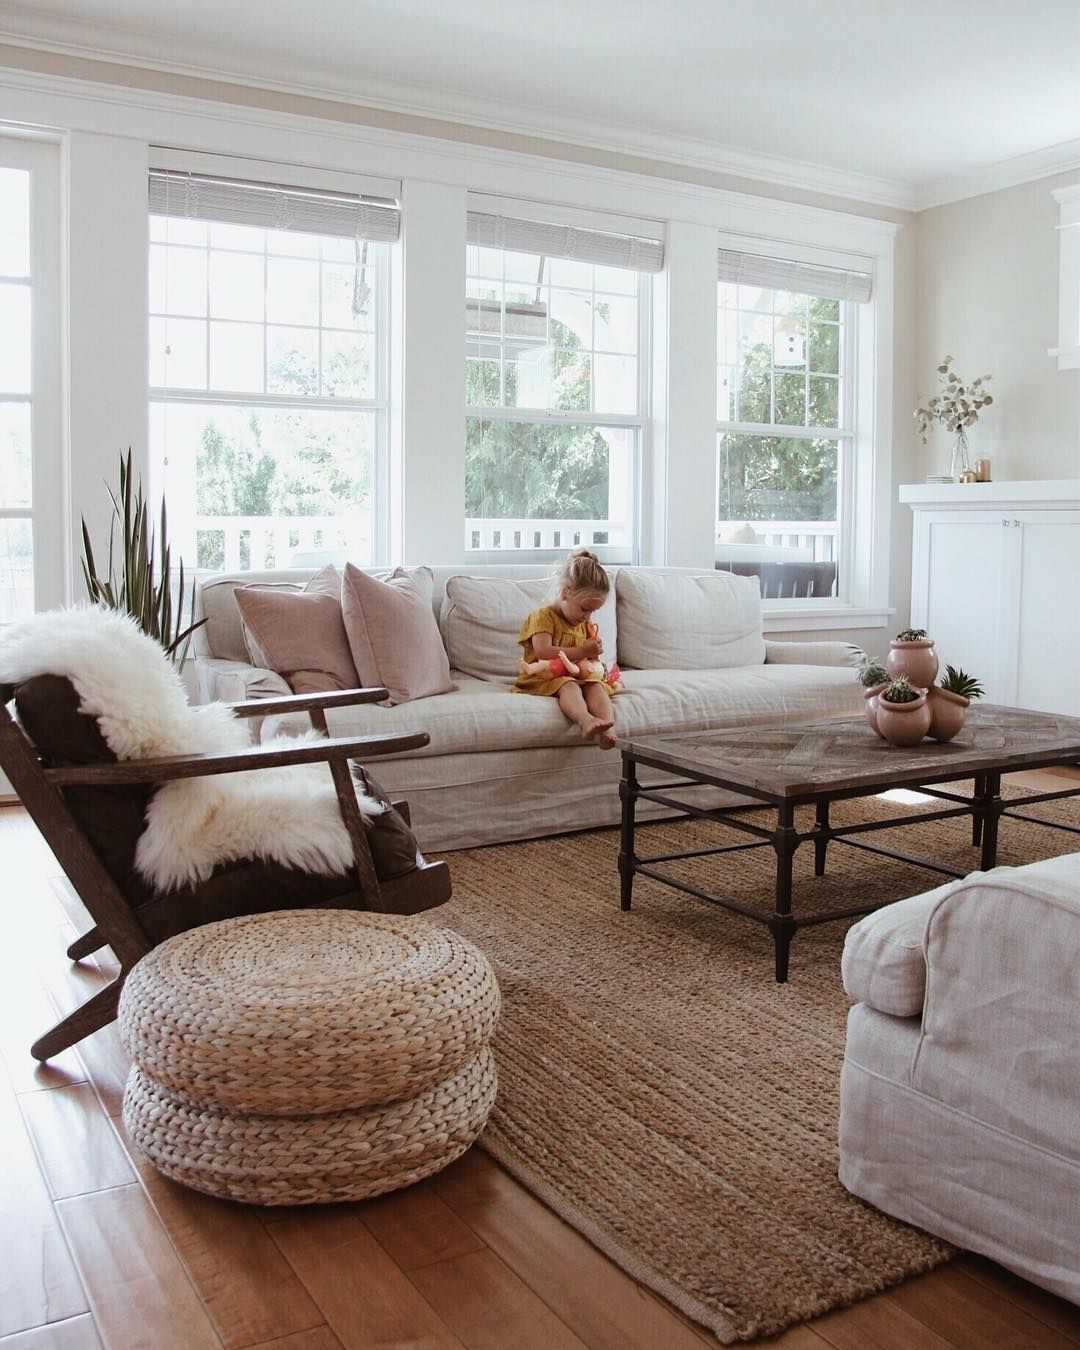 Pin by schyler lambert on home pinterest living rooms room and